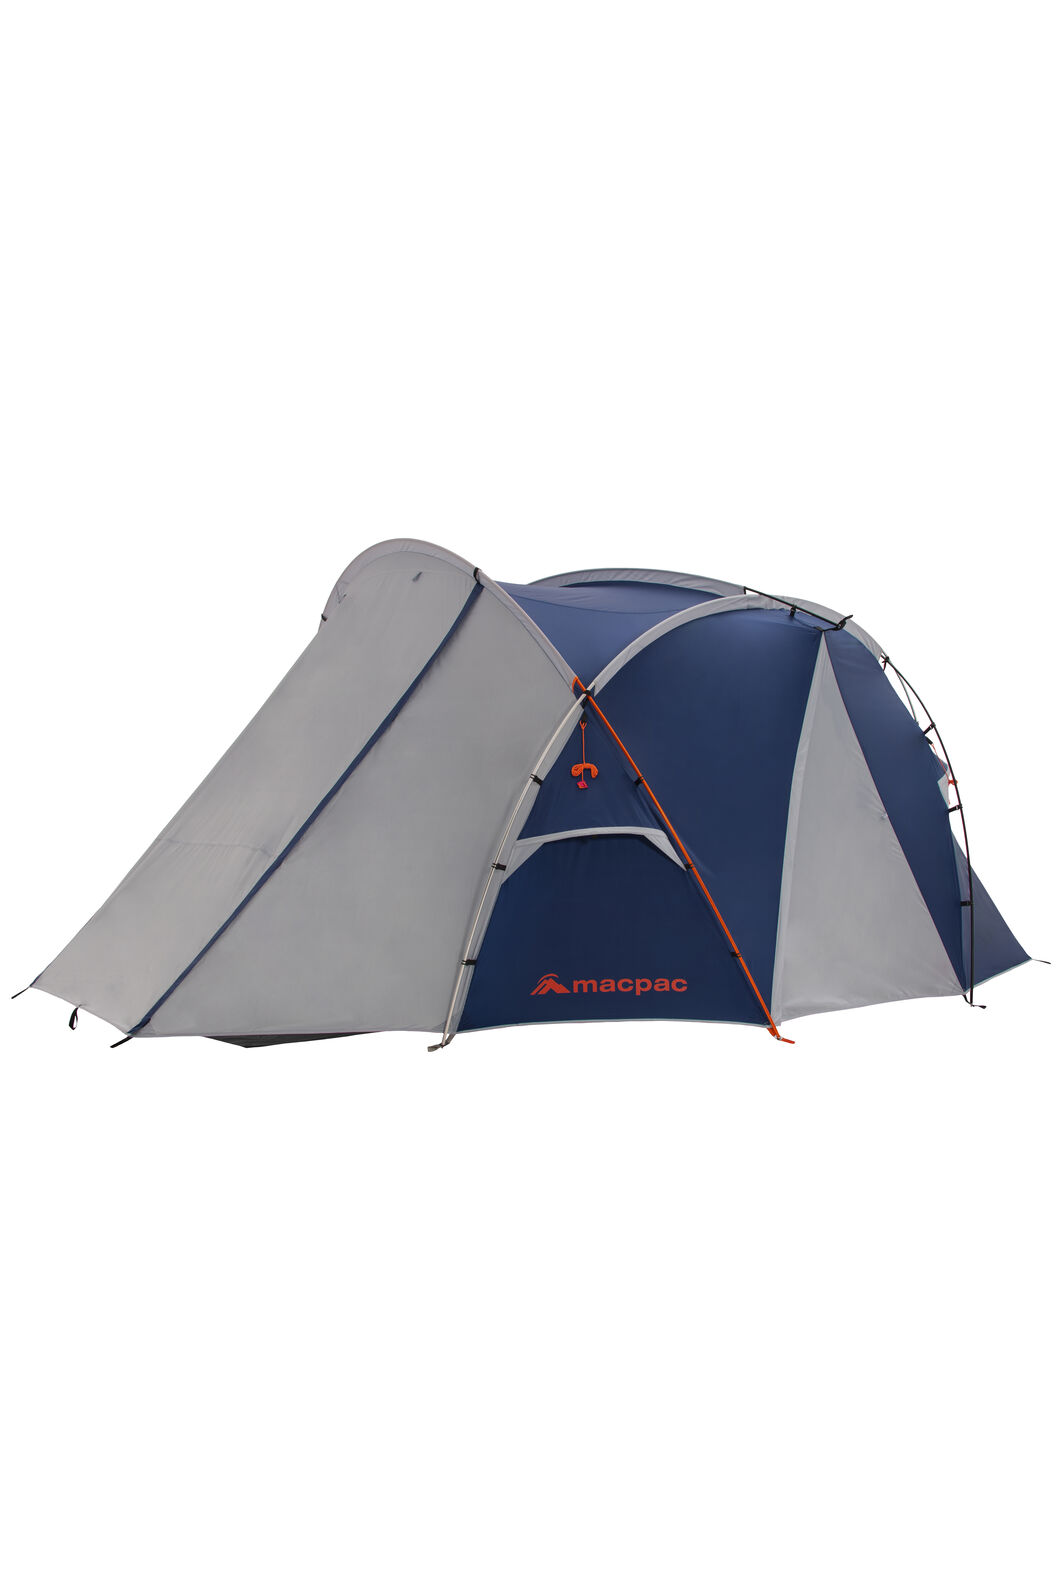 Macpac Solstice Six Person Family Camping Tent, Navy, hi-res